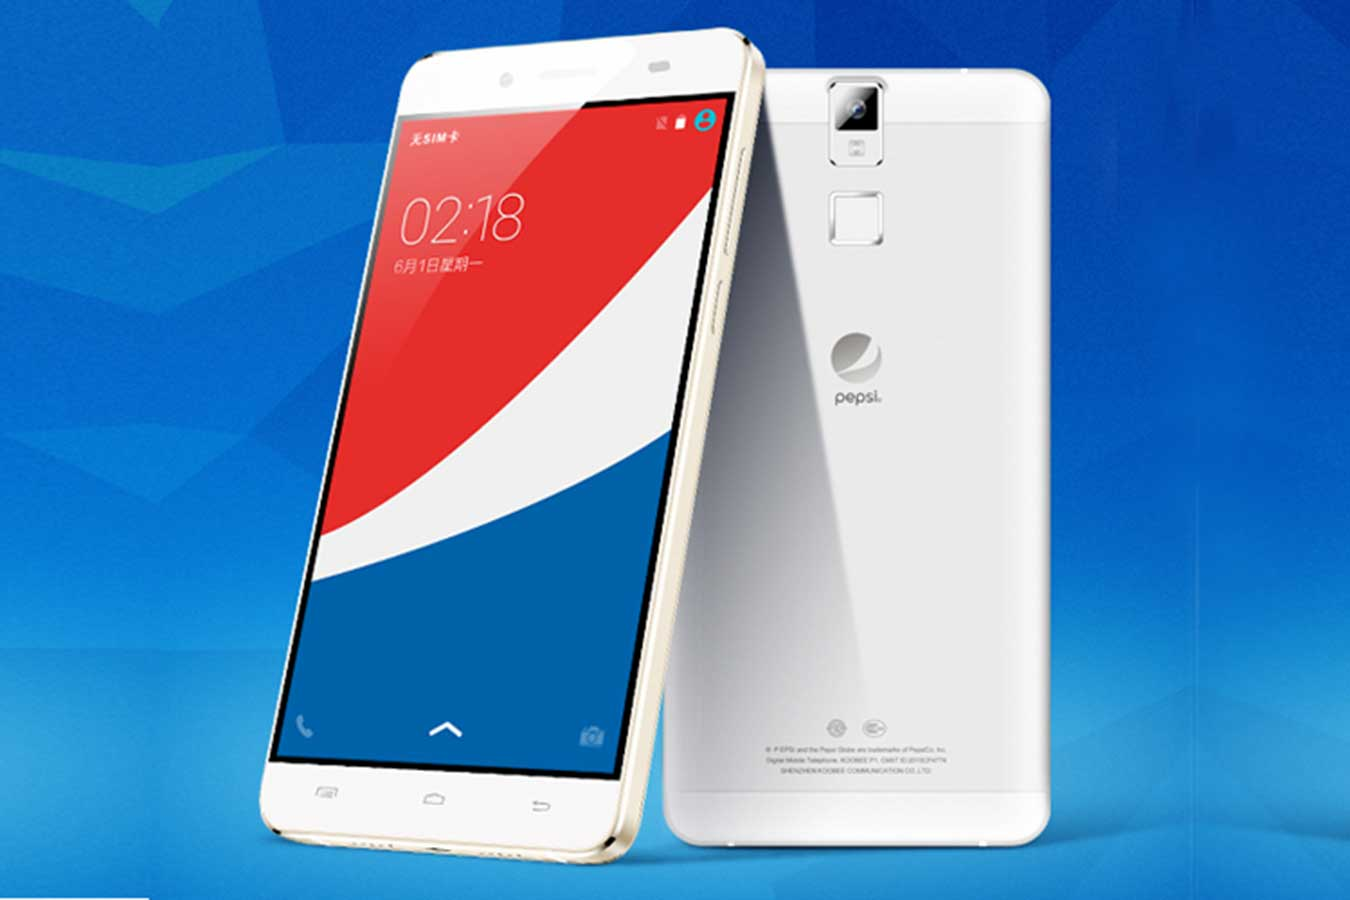 Pepsi Launched It's 5.5-inch Smartphone – Pepsi P1